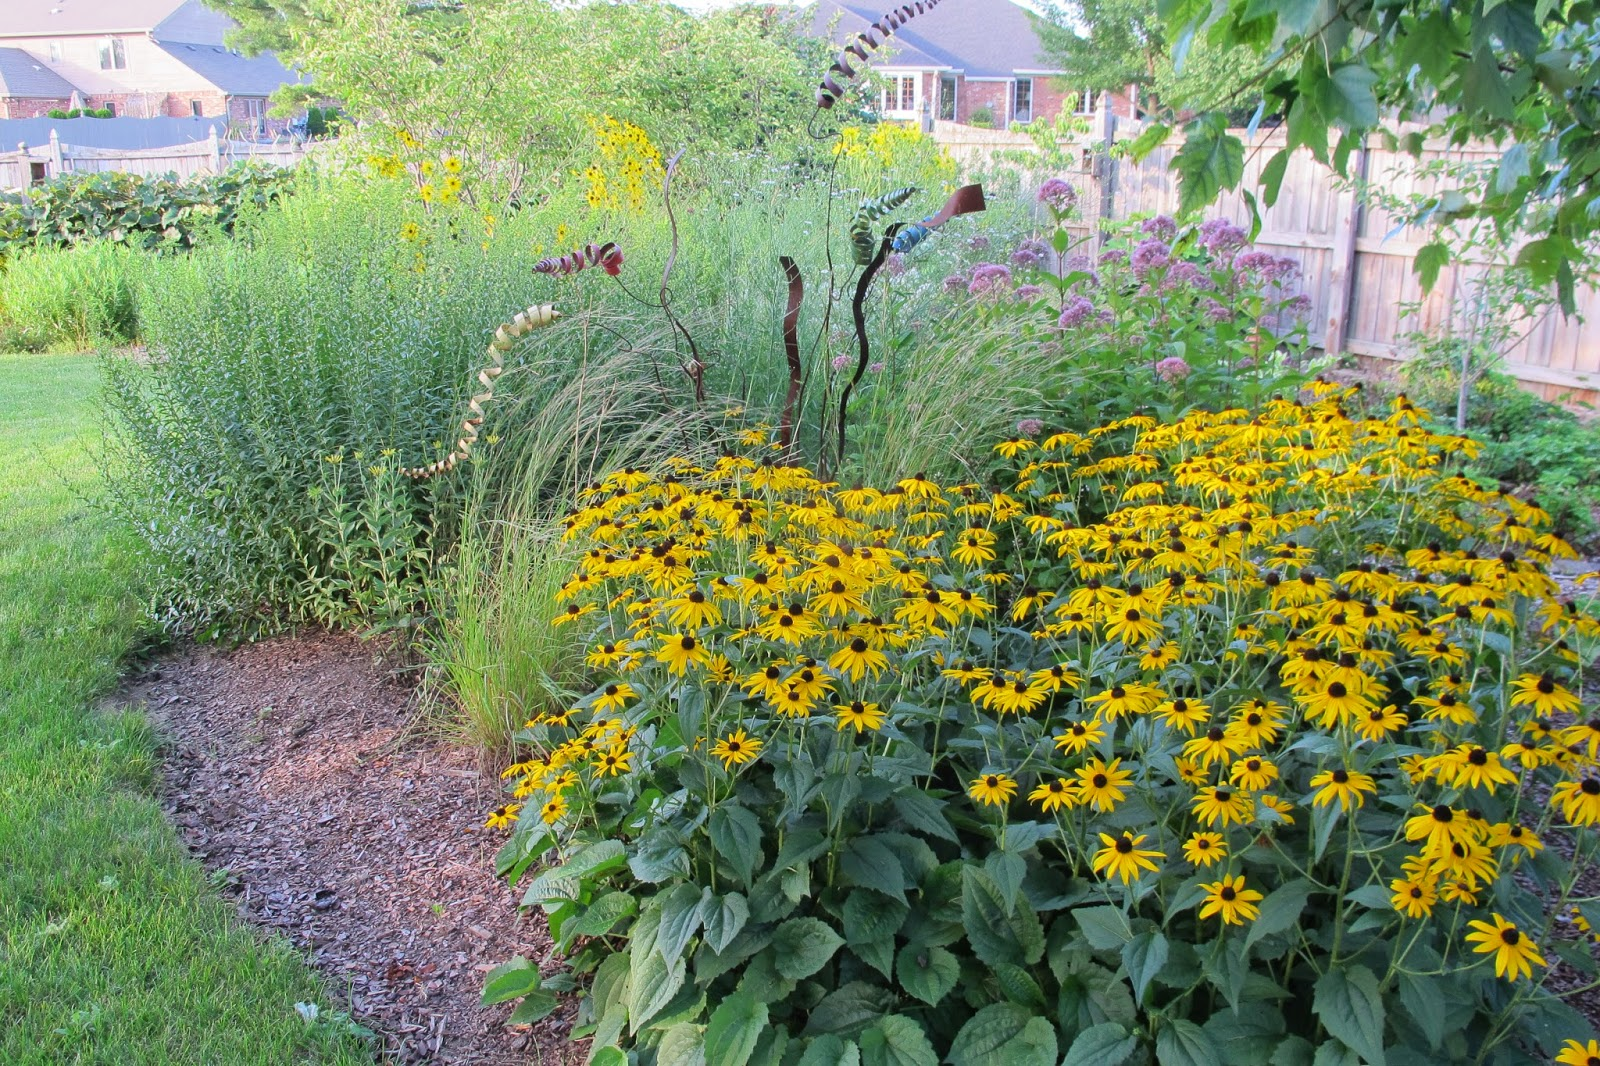 Garden in august in a garden - Black Eyed Susan Rudbeckia Hirta Is In Full Bloom If You Look Just Above Its Flowers You Can See The Purple Mop Heads Of Joe Pye Weed